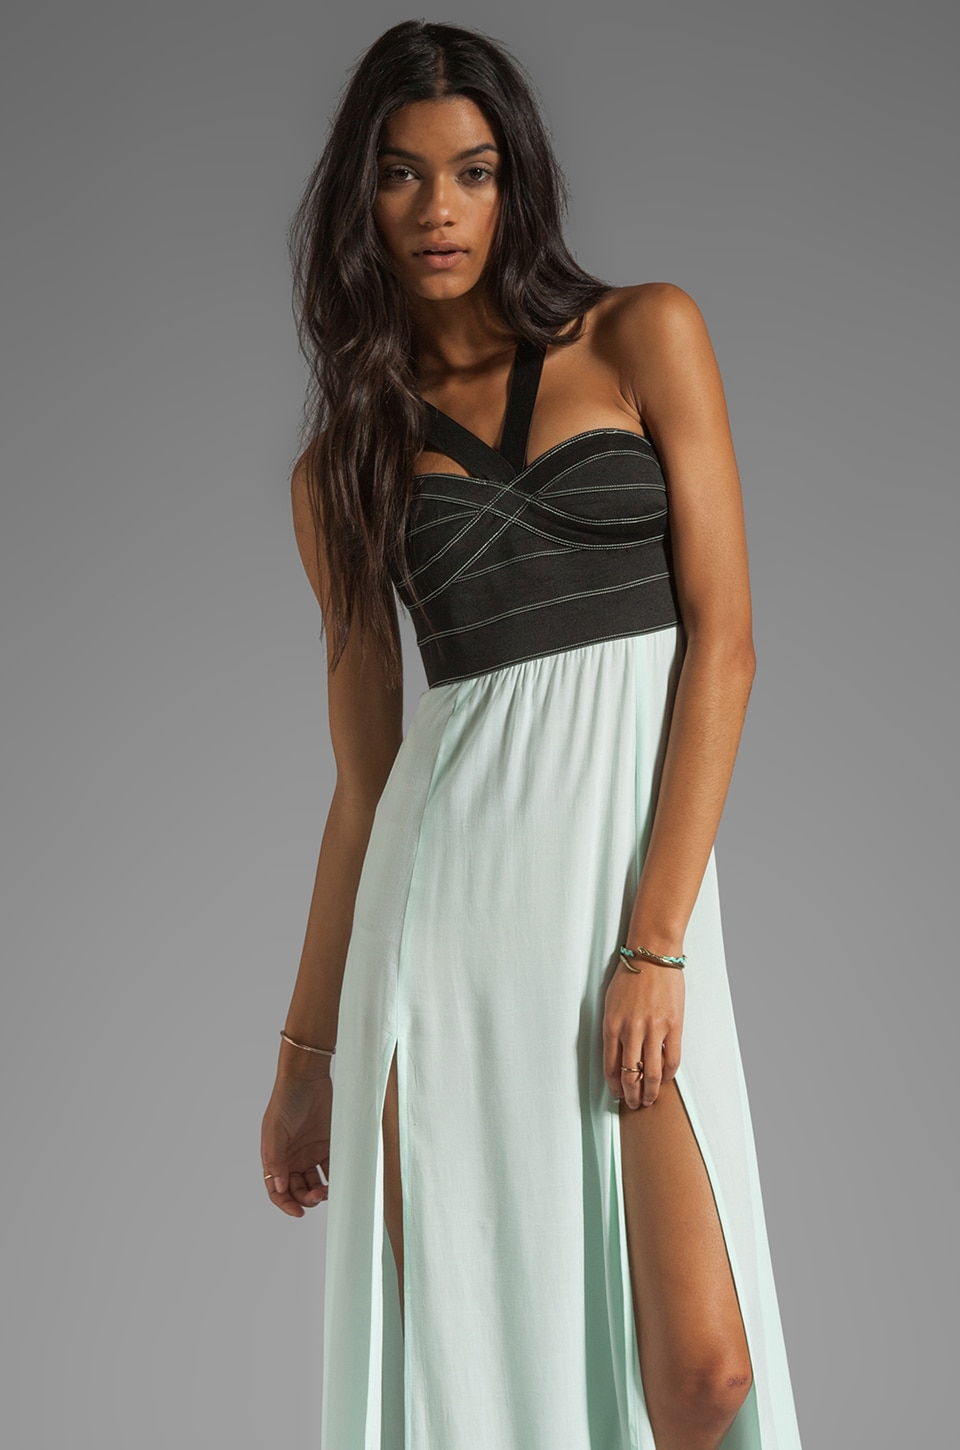 This is a Love Song Boulevard Dress in Clearwater